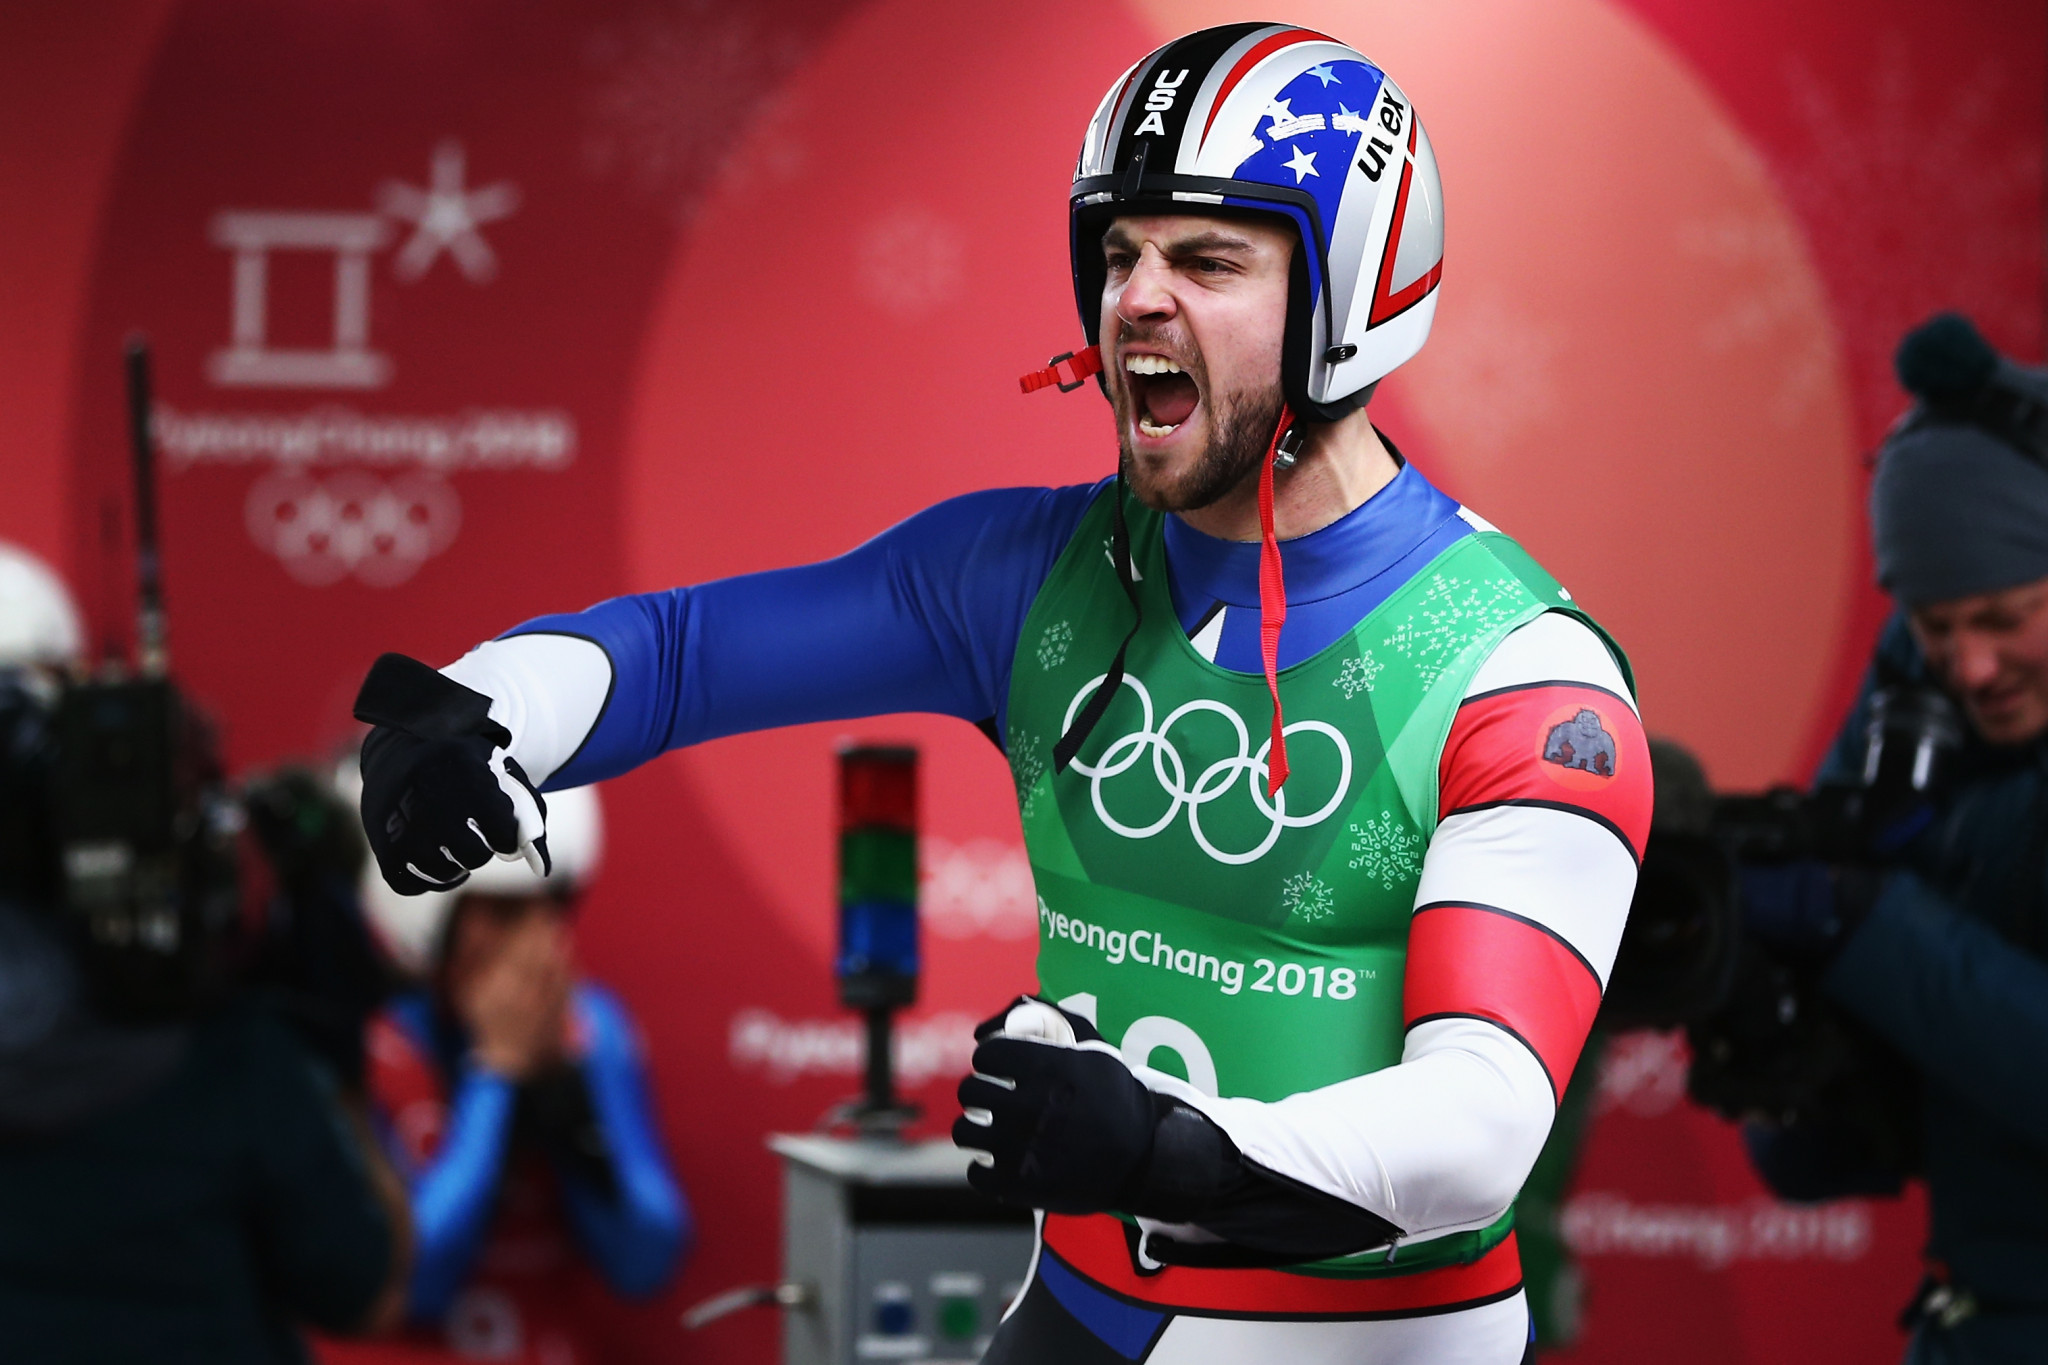 Chris Mazdzer won an Olympic silver medal at Pyeongchang 2018 ©Getty Images